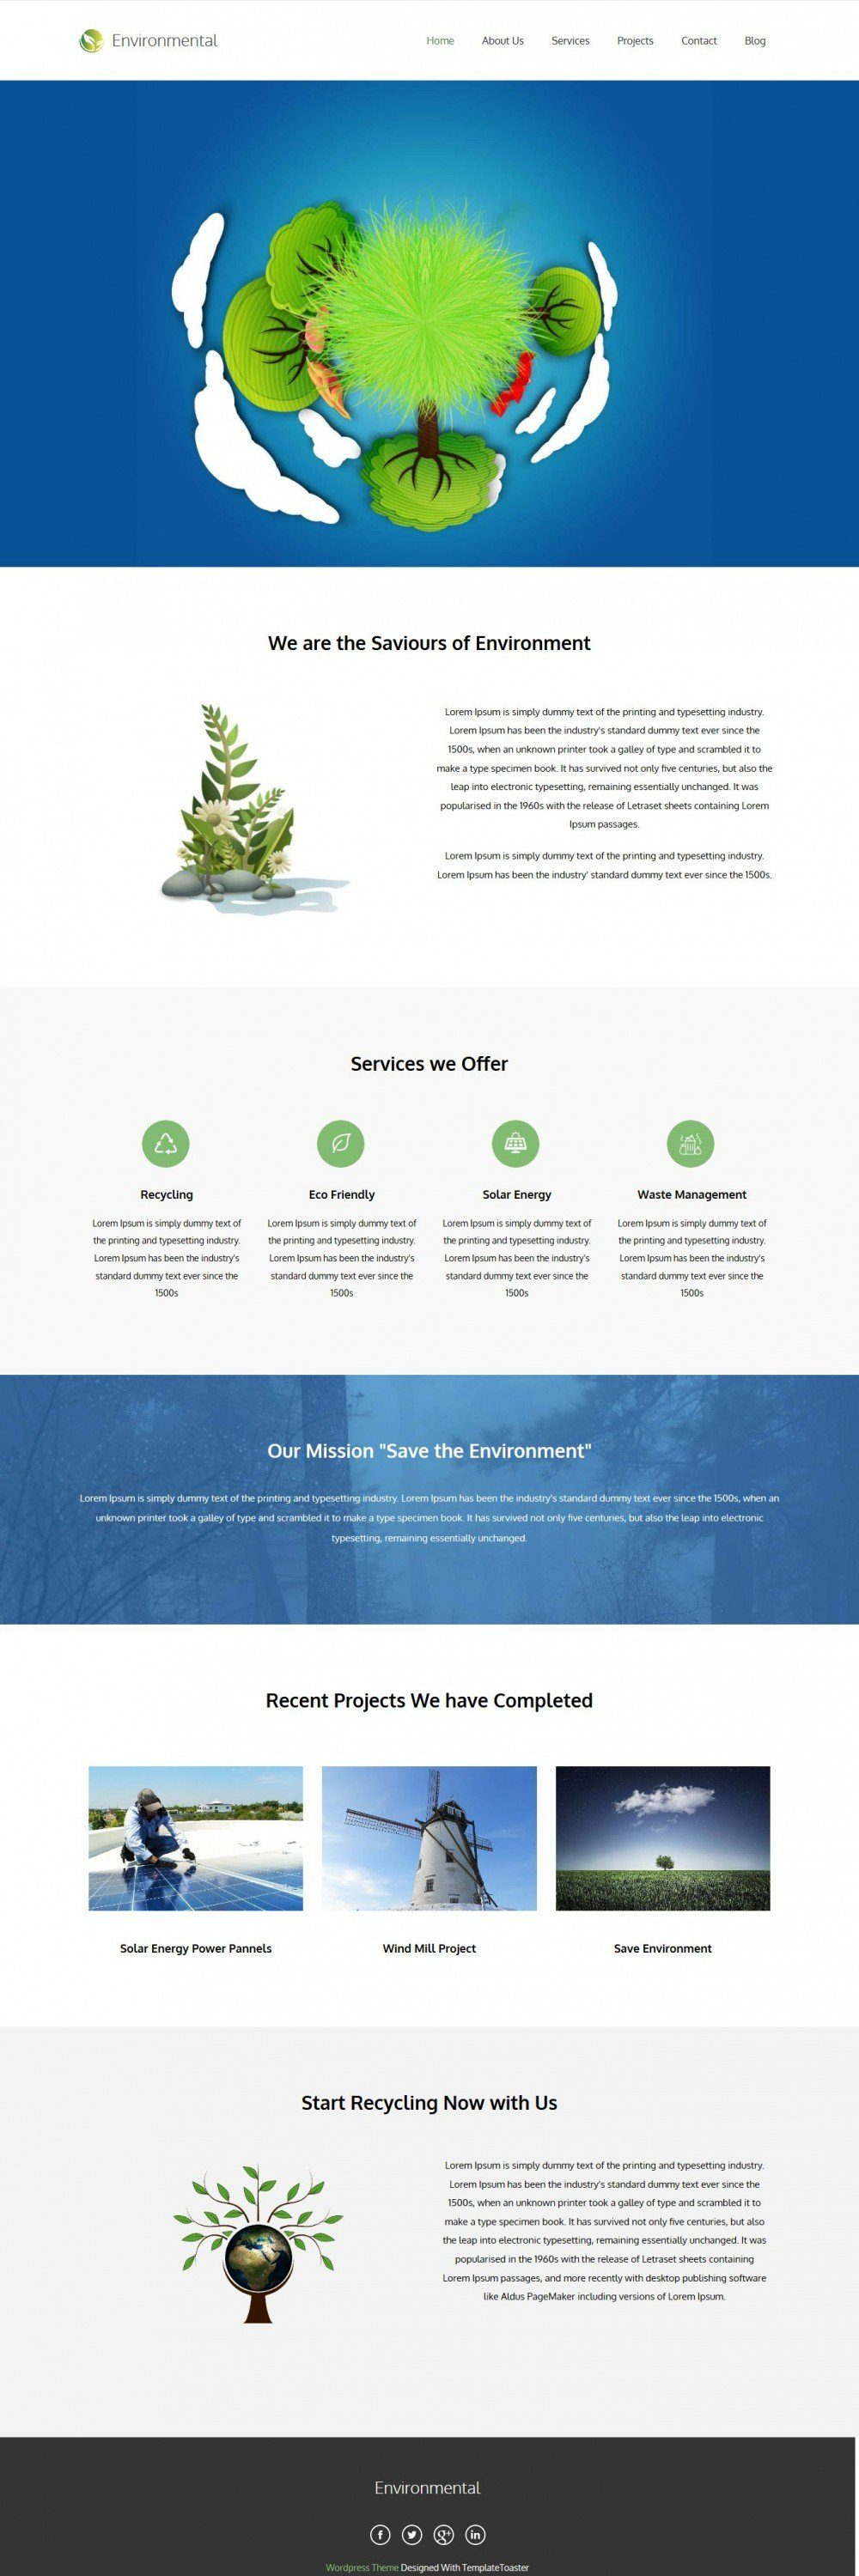 Environmental - Responsive Environment/Nature Joomla Template